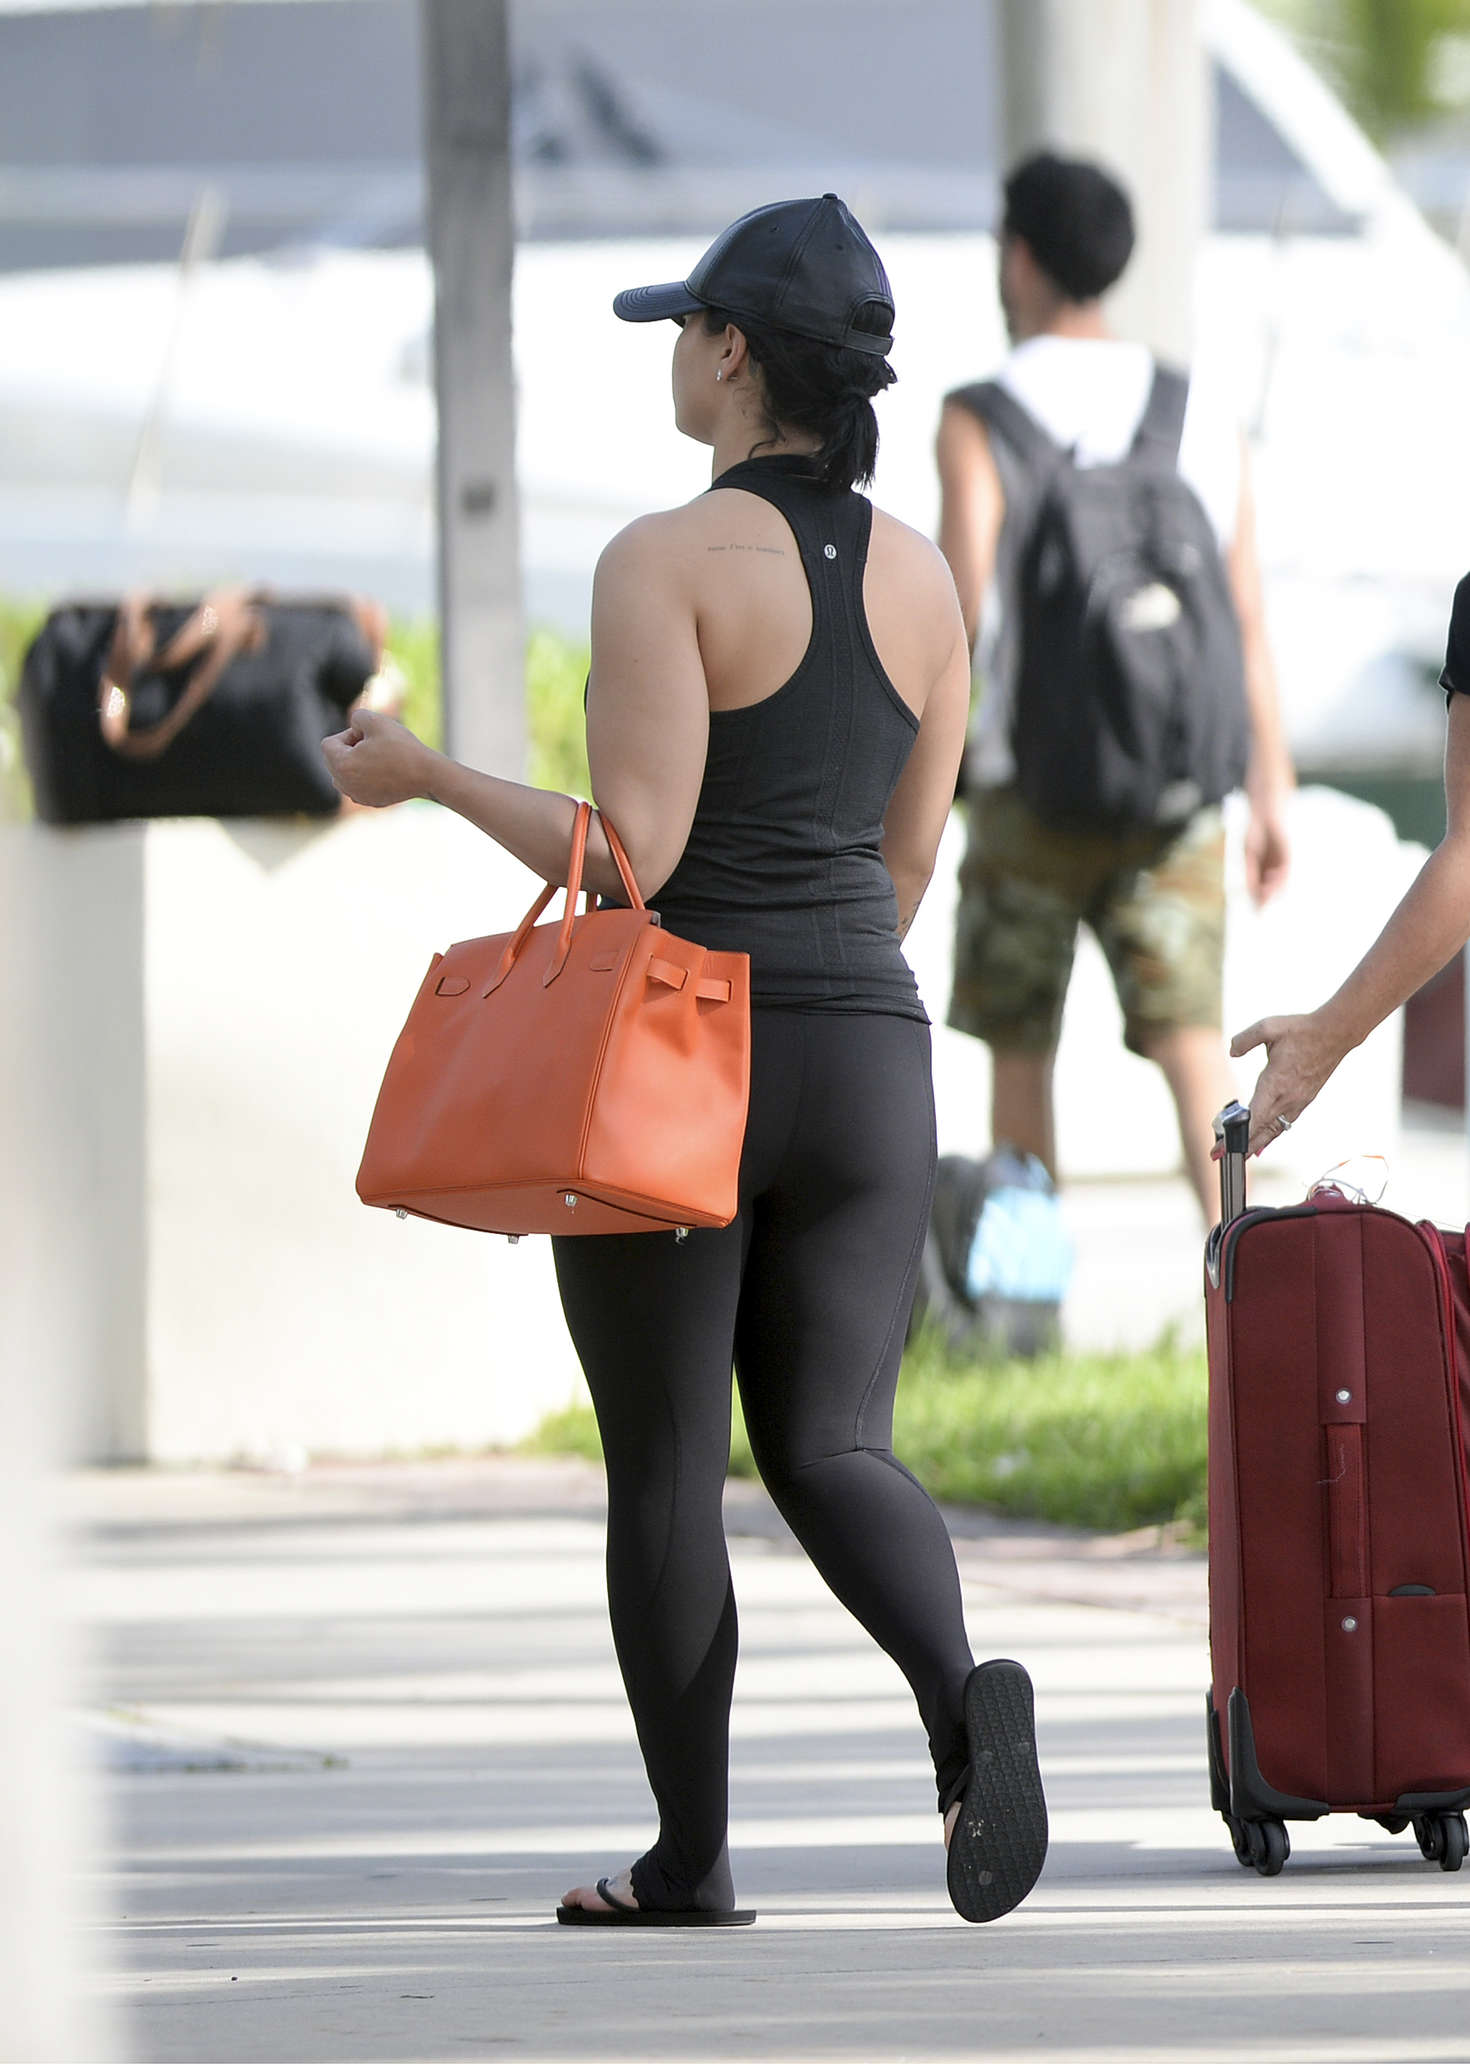 Demi Lovato in Tights Heading to Board a Yacht -08 - GotCeleb